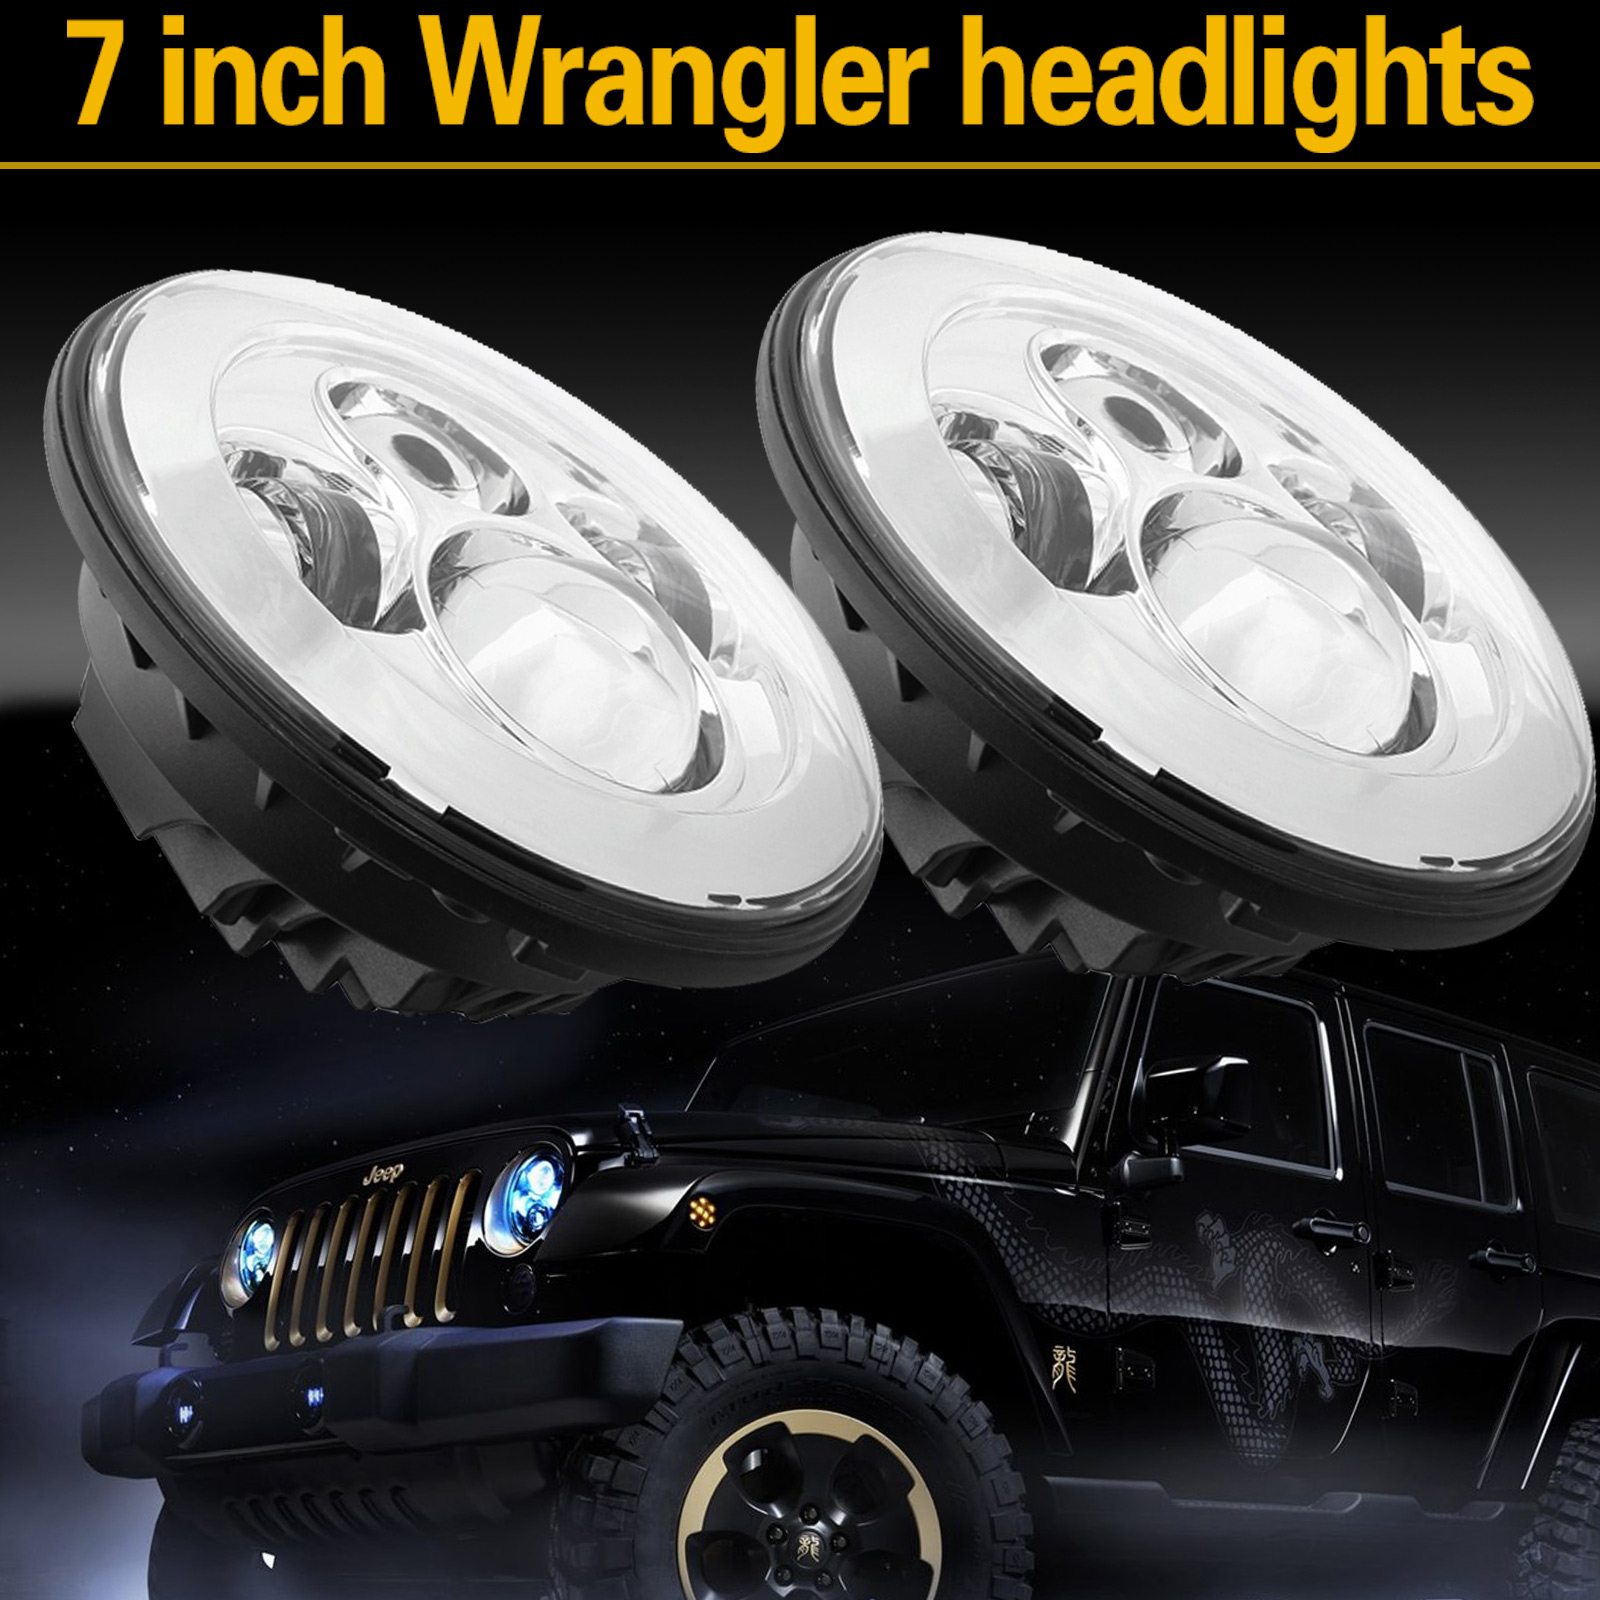 1Pc 7inch Round Chrome H4 LED Headlight Projector Light For Car Jeep Wrangler JK  CSL2017 windshield pillar mount grab handles for jeep wrangler jk and jku unlimited solid mount grab textured steel bar front fits jeep